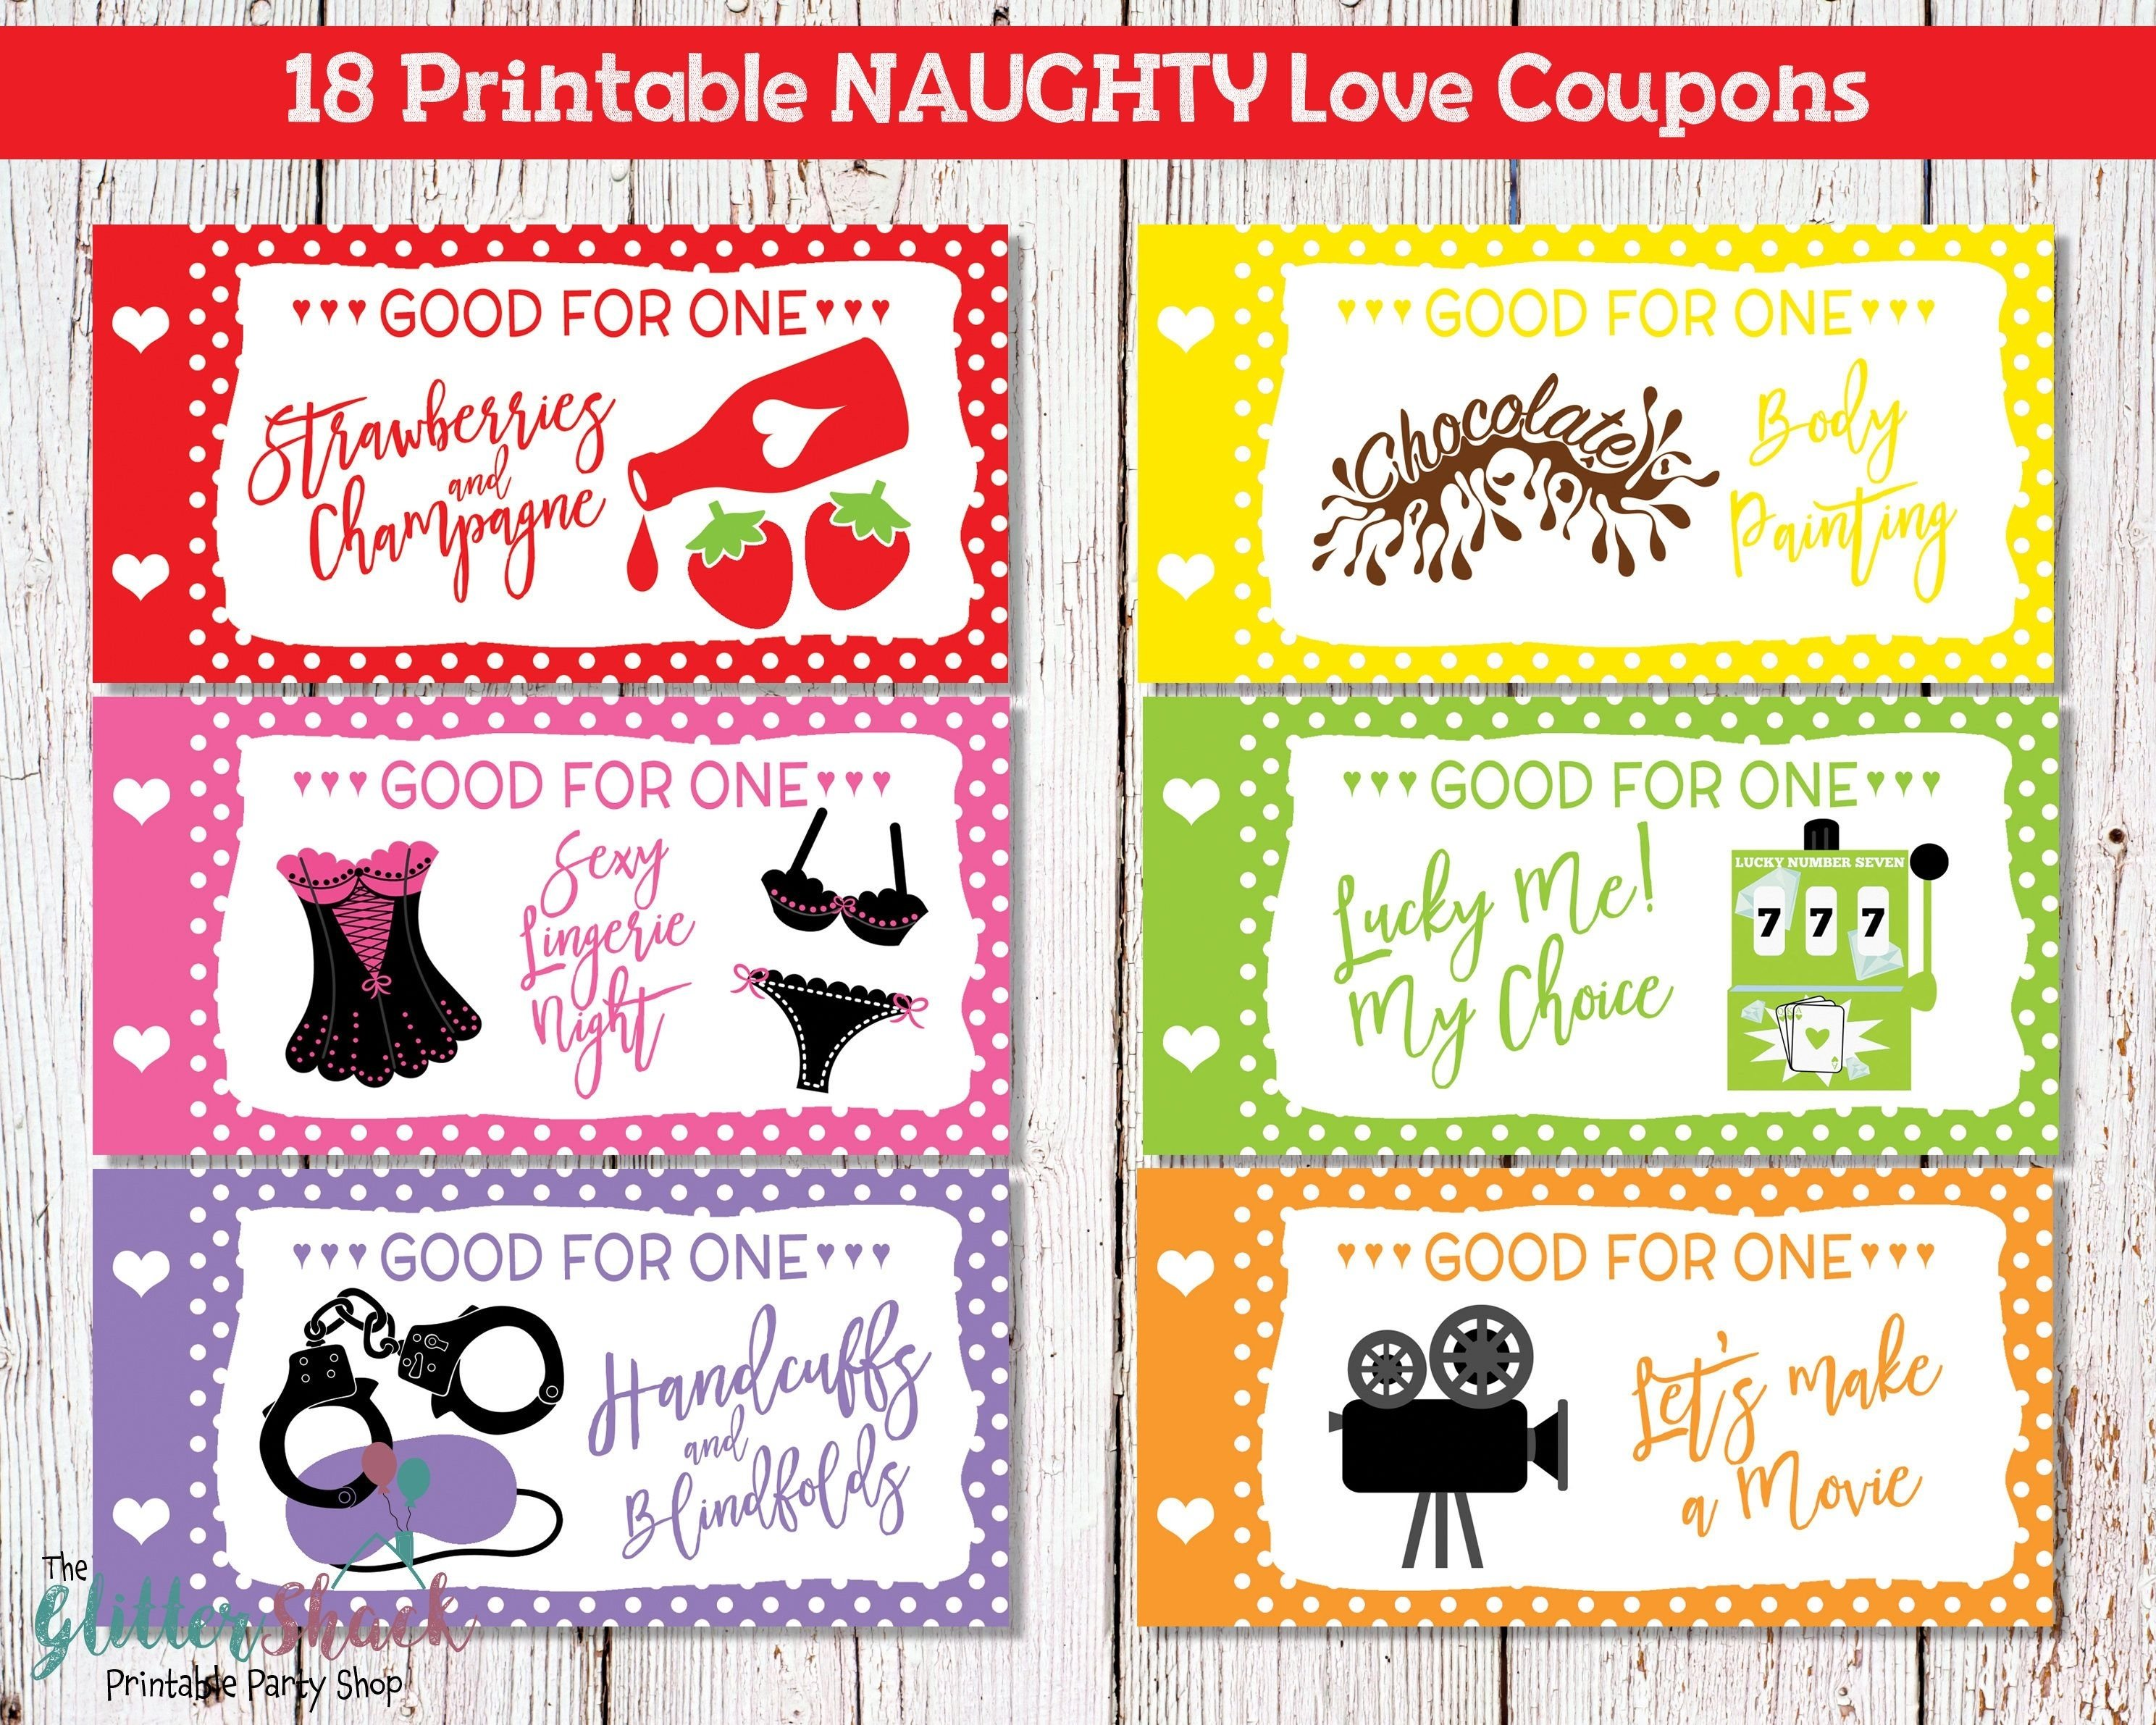 10 Beautiful Naughty Coupon Ideas For Boyfriend printable naughty love coupons for men husband boyfriend sexy 2 2020